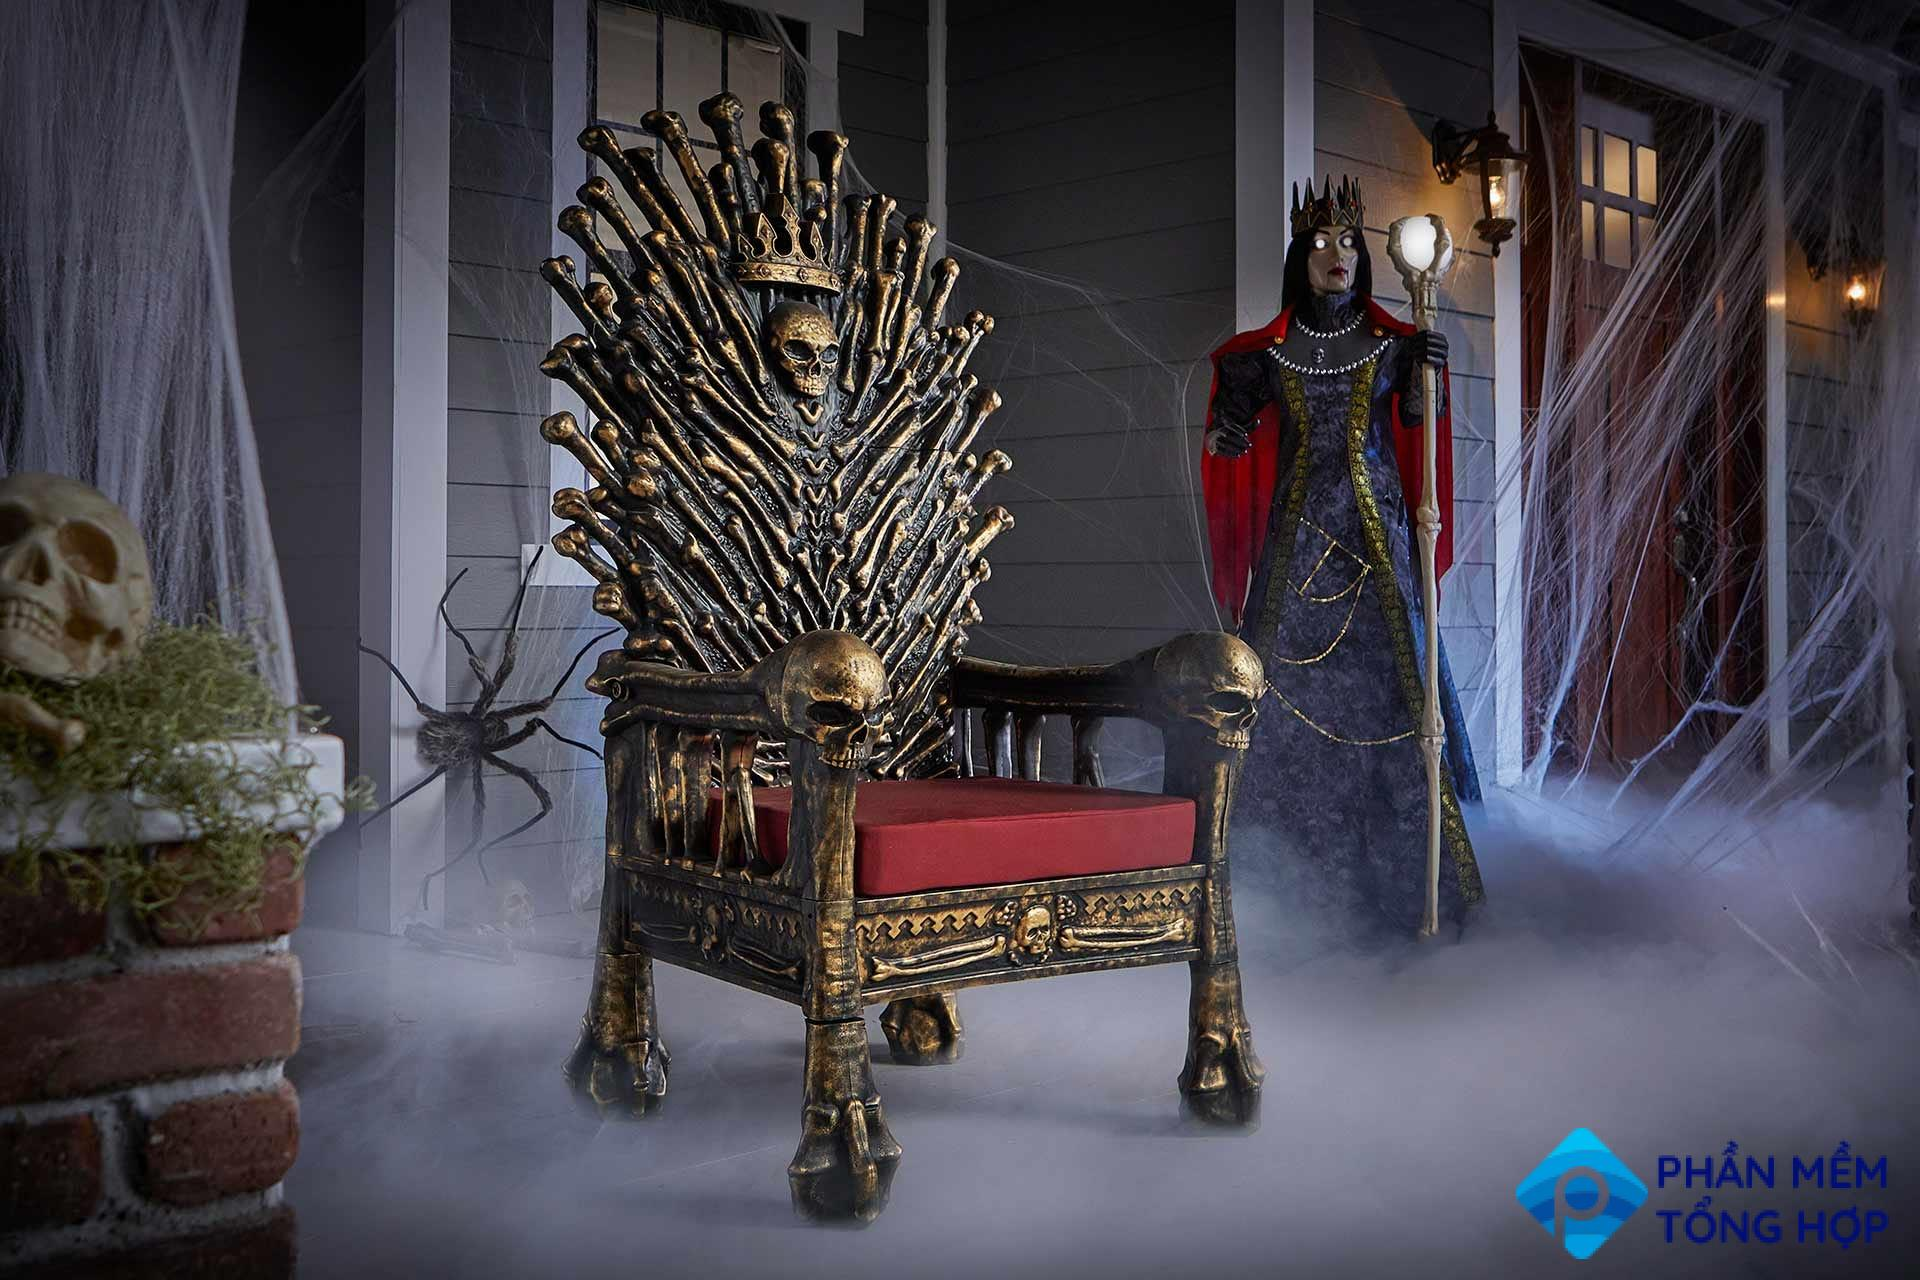 A life-size throne with golden bone details and a red cushion.